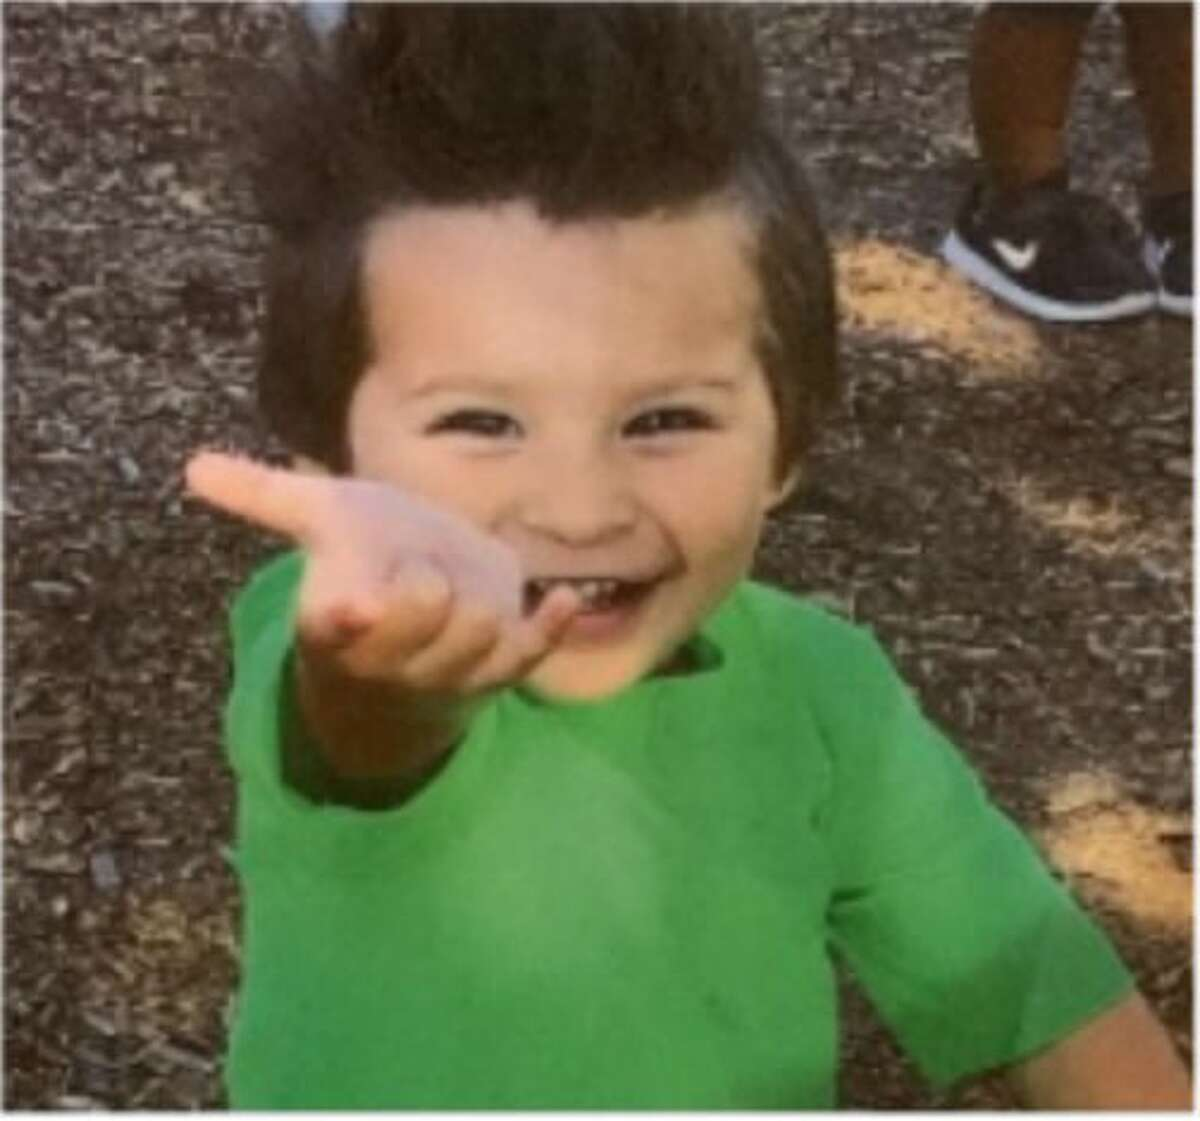 Wyatt Crowley, 4, was found safe in Houston on Monday. He had been missing since Sunday, when his mother reported him missing from his Austin home, officials said.